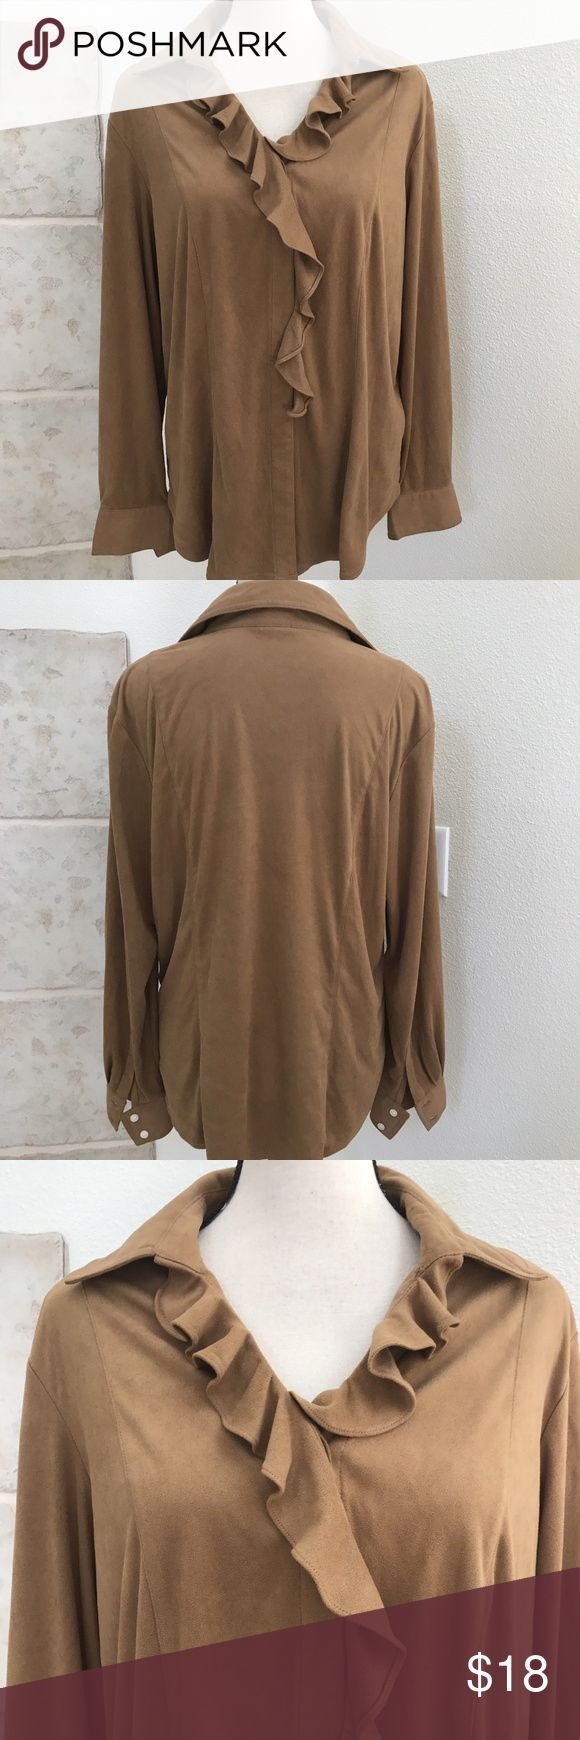 """🍀🍀INC Woman Ruffle Micro Suede Feel Blouse 14W INC International Concepts Woman Micro Suede Feel Ruffle Blouse size 14W.  100% Polyester.   STYLE: Ruffle Blouse   COLOR: Brown   SIZE: 14W   CONDITION: Great conditions with no signs of wear, one missing button, no holes, rips.  MEASUREMENTS: LAYING FLAT: Length- 26.5""""   Shoulder to shoulder- 17.5"""" Armpit to Armpit(across)- 22"""" Waist(across)- 21"""" Armhole Depth- 22""""  HWA Pants 1 INC International Concepts Tops Blouses"""